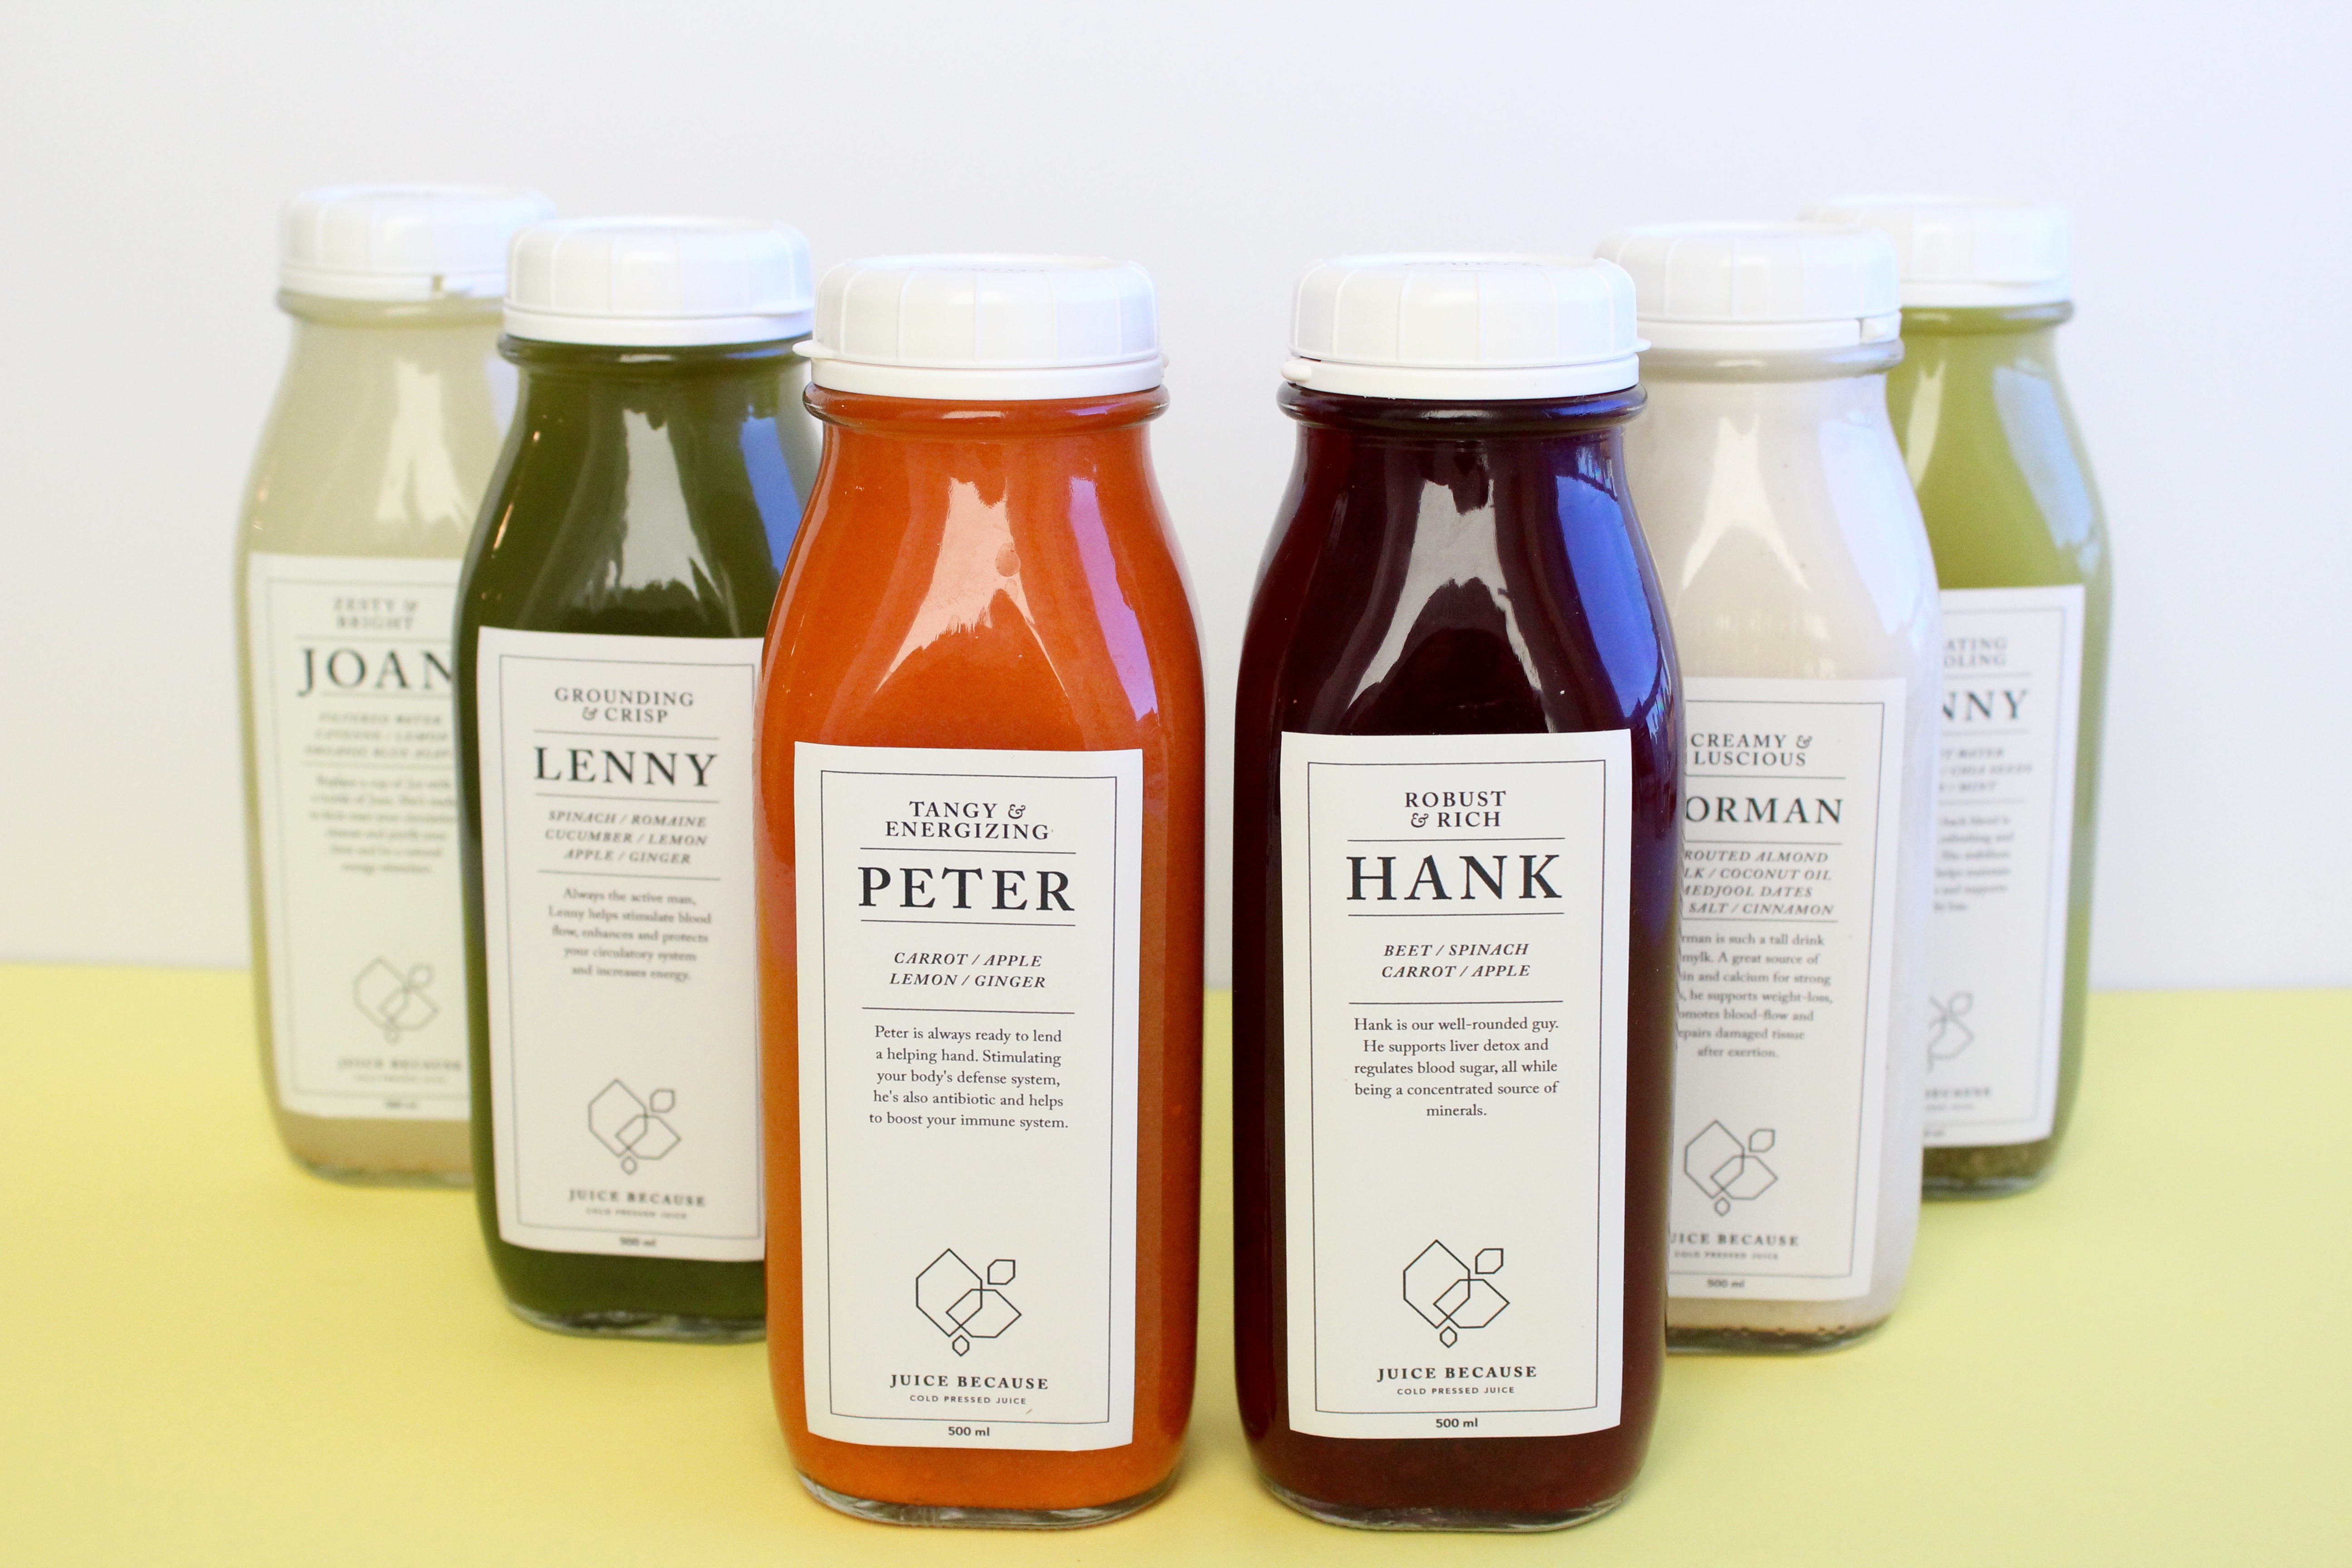 Juice Cleanse Recap and Review: What to expect from a 3-day juice cleanse